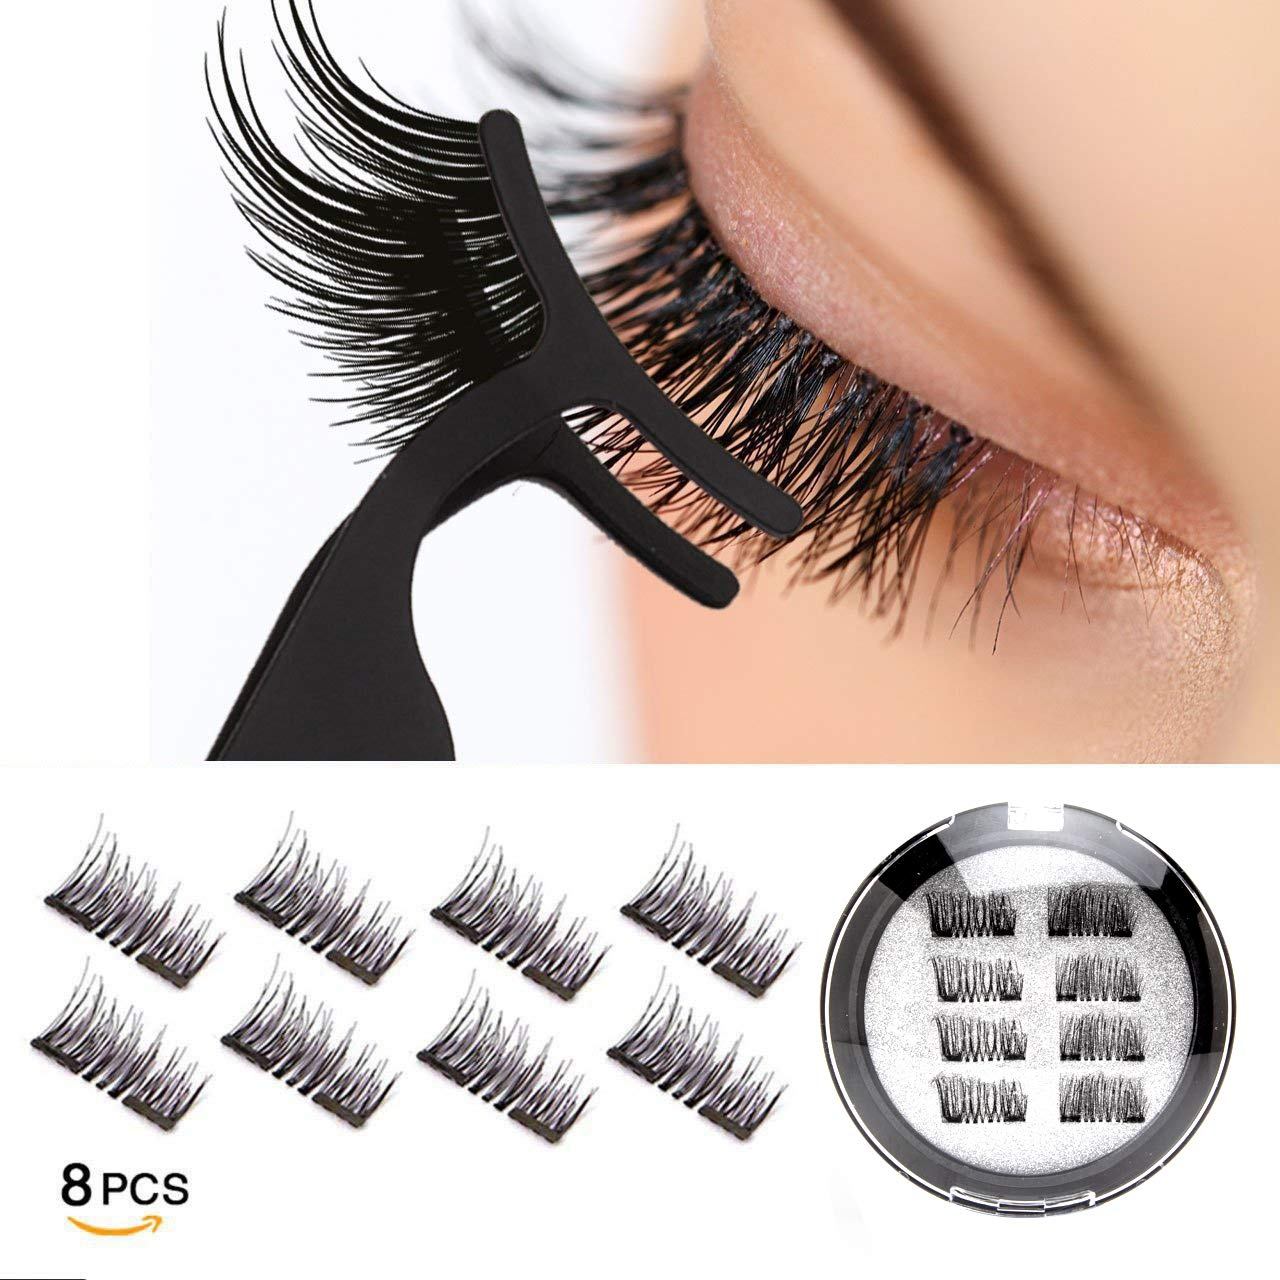 Dual Magnetic Eyelashes 0.2mm Ultra Thin Magnet Lightweight & Easy to Wear Best 3D Reusable Eyelashes Extensions (8 pc with tweezers) VASSOUL